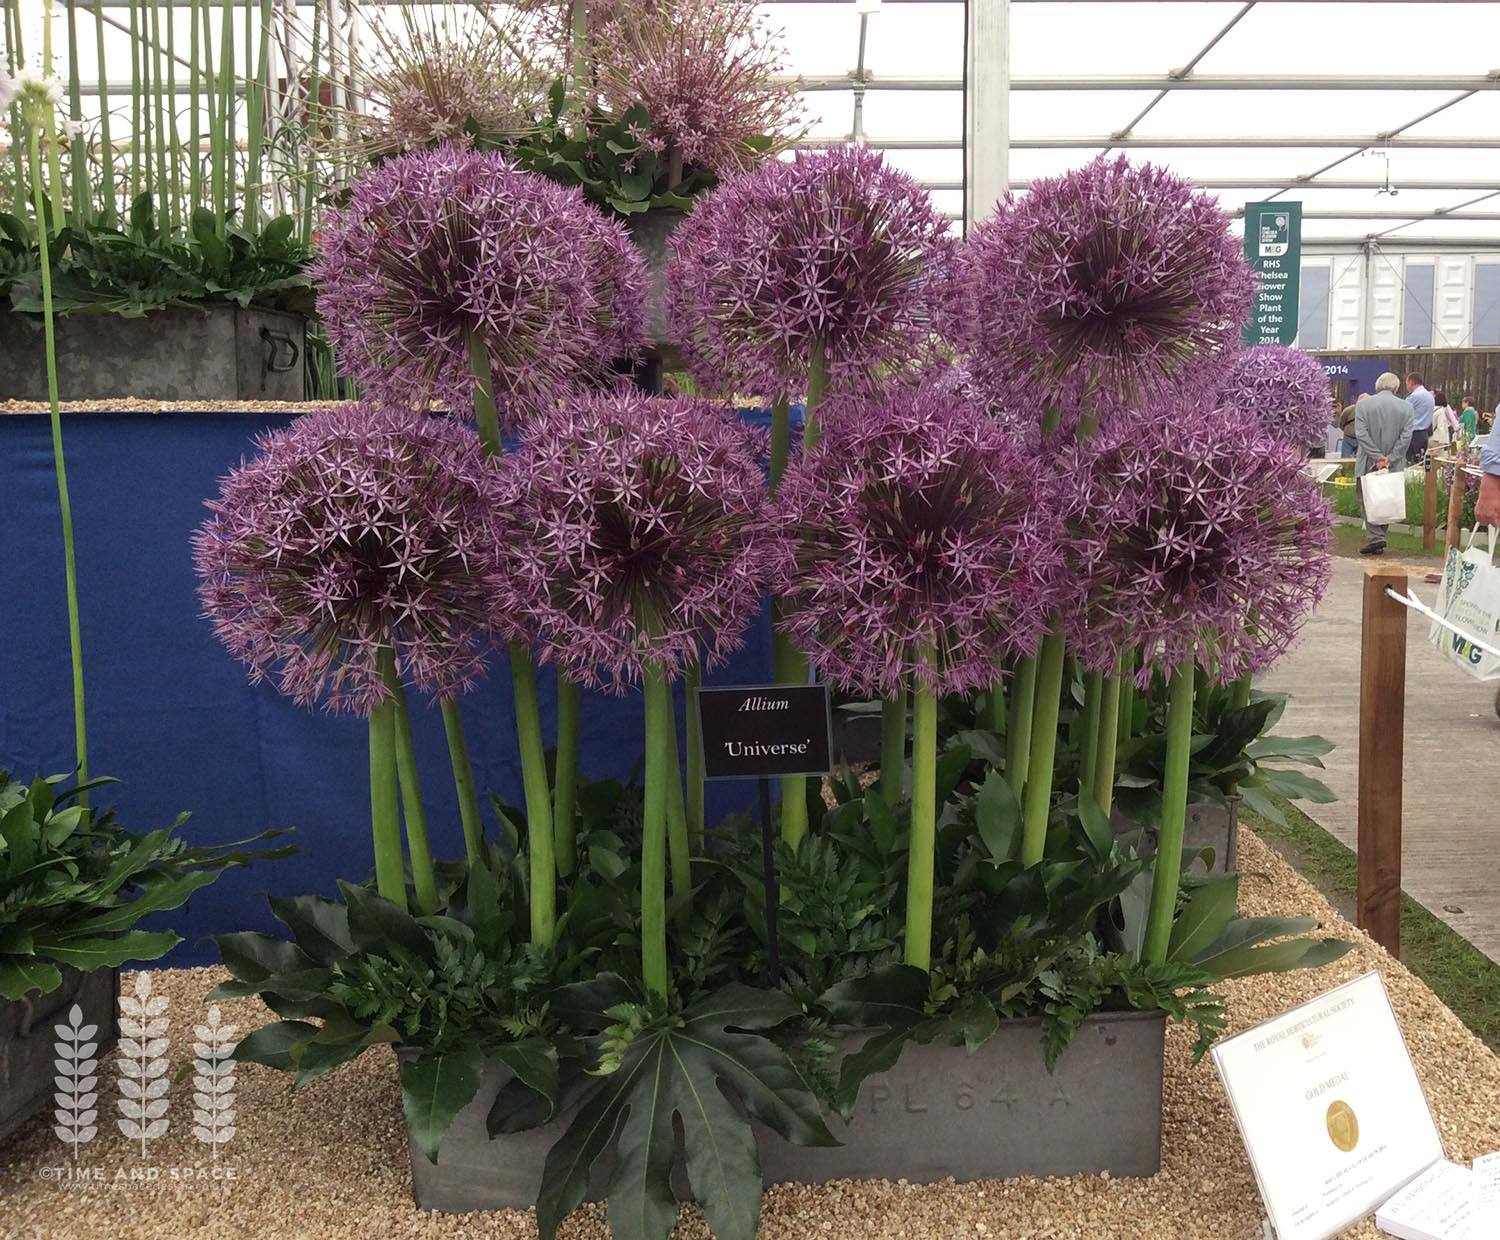 Allium universe - a huge, majestic Allium for dramatic impact, at RHS Chelsea 2014